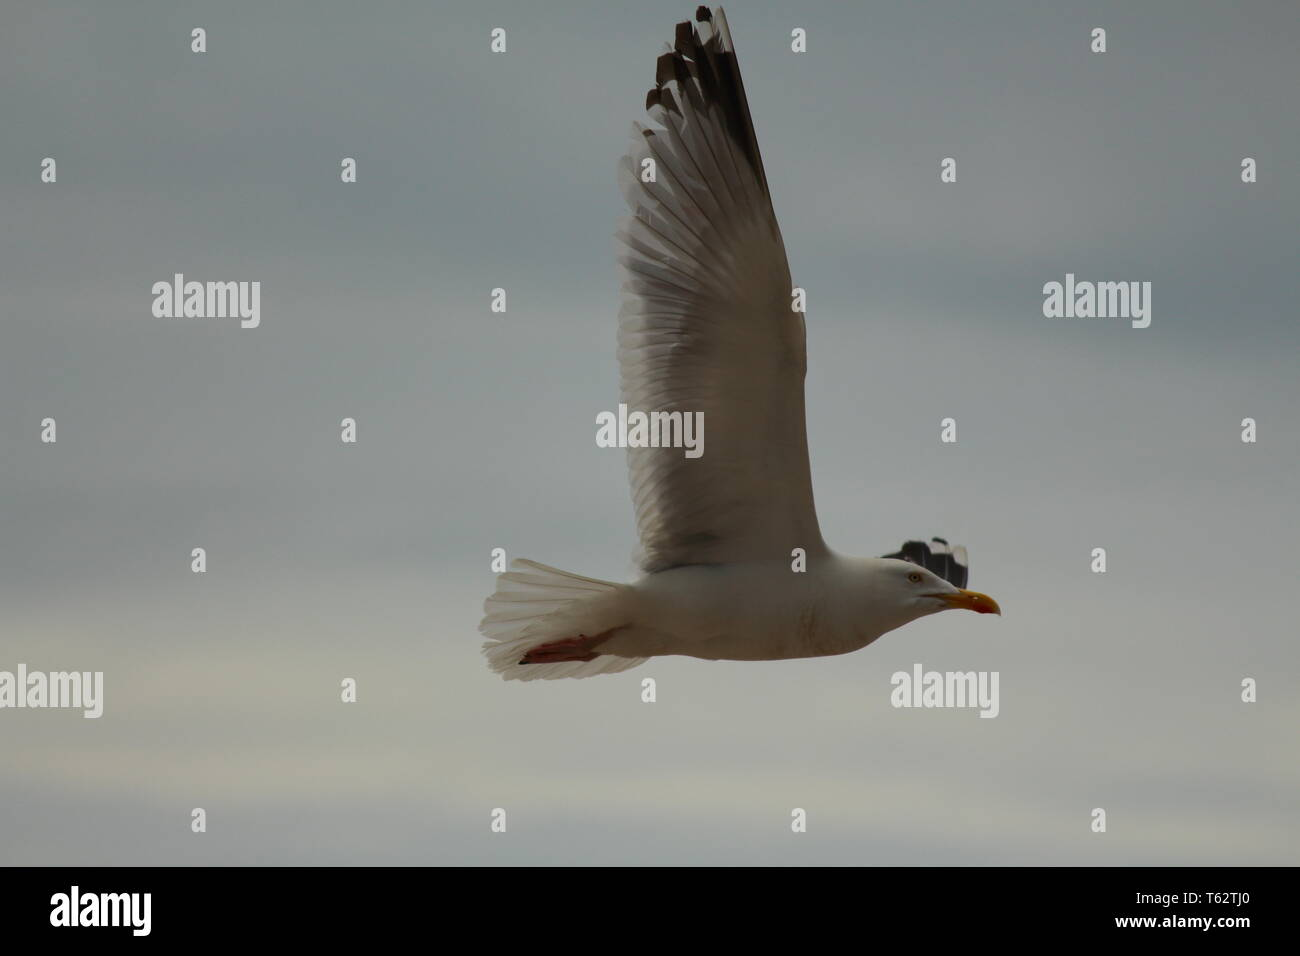 Seagull flying with wings expanded showing off feathers - Stock Image